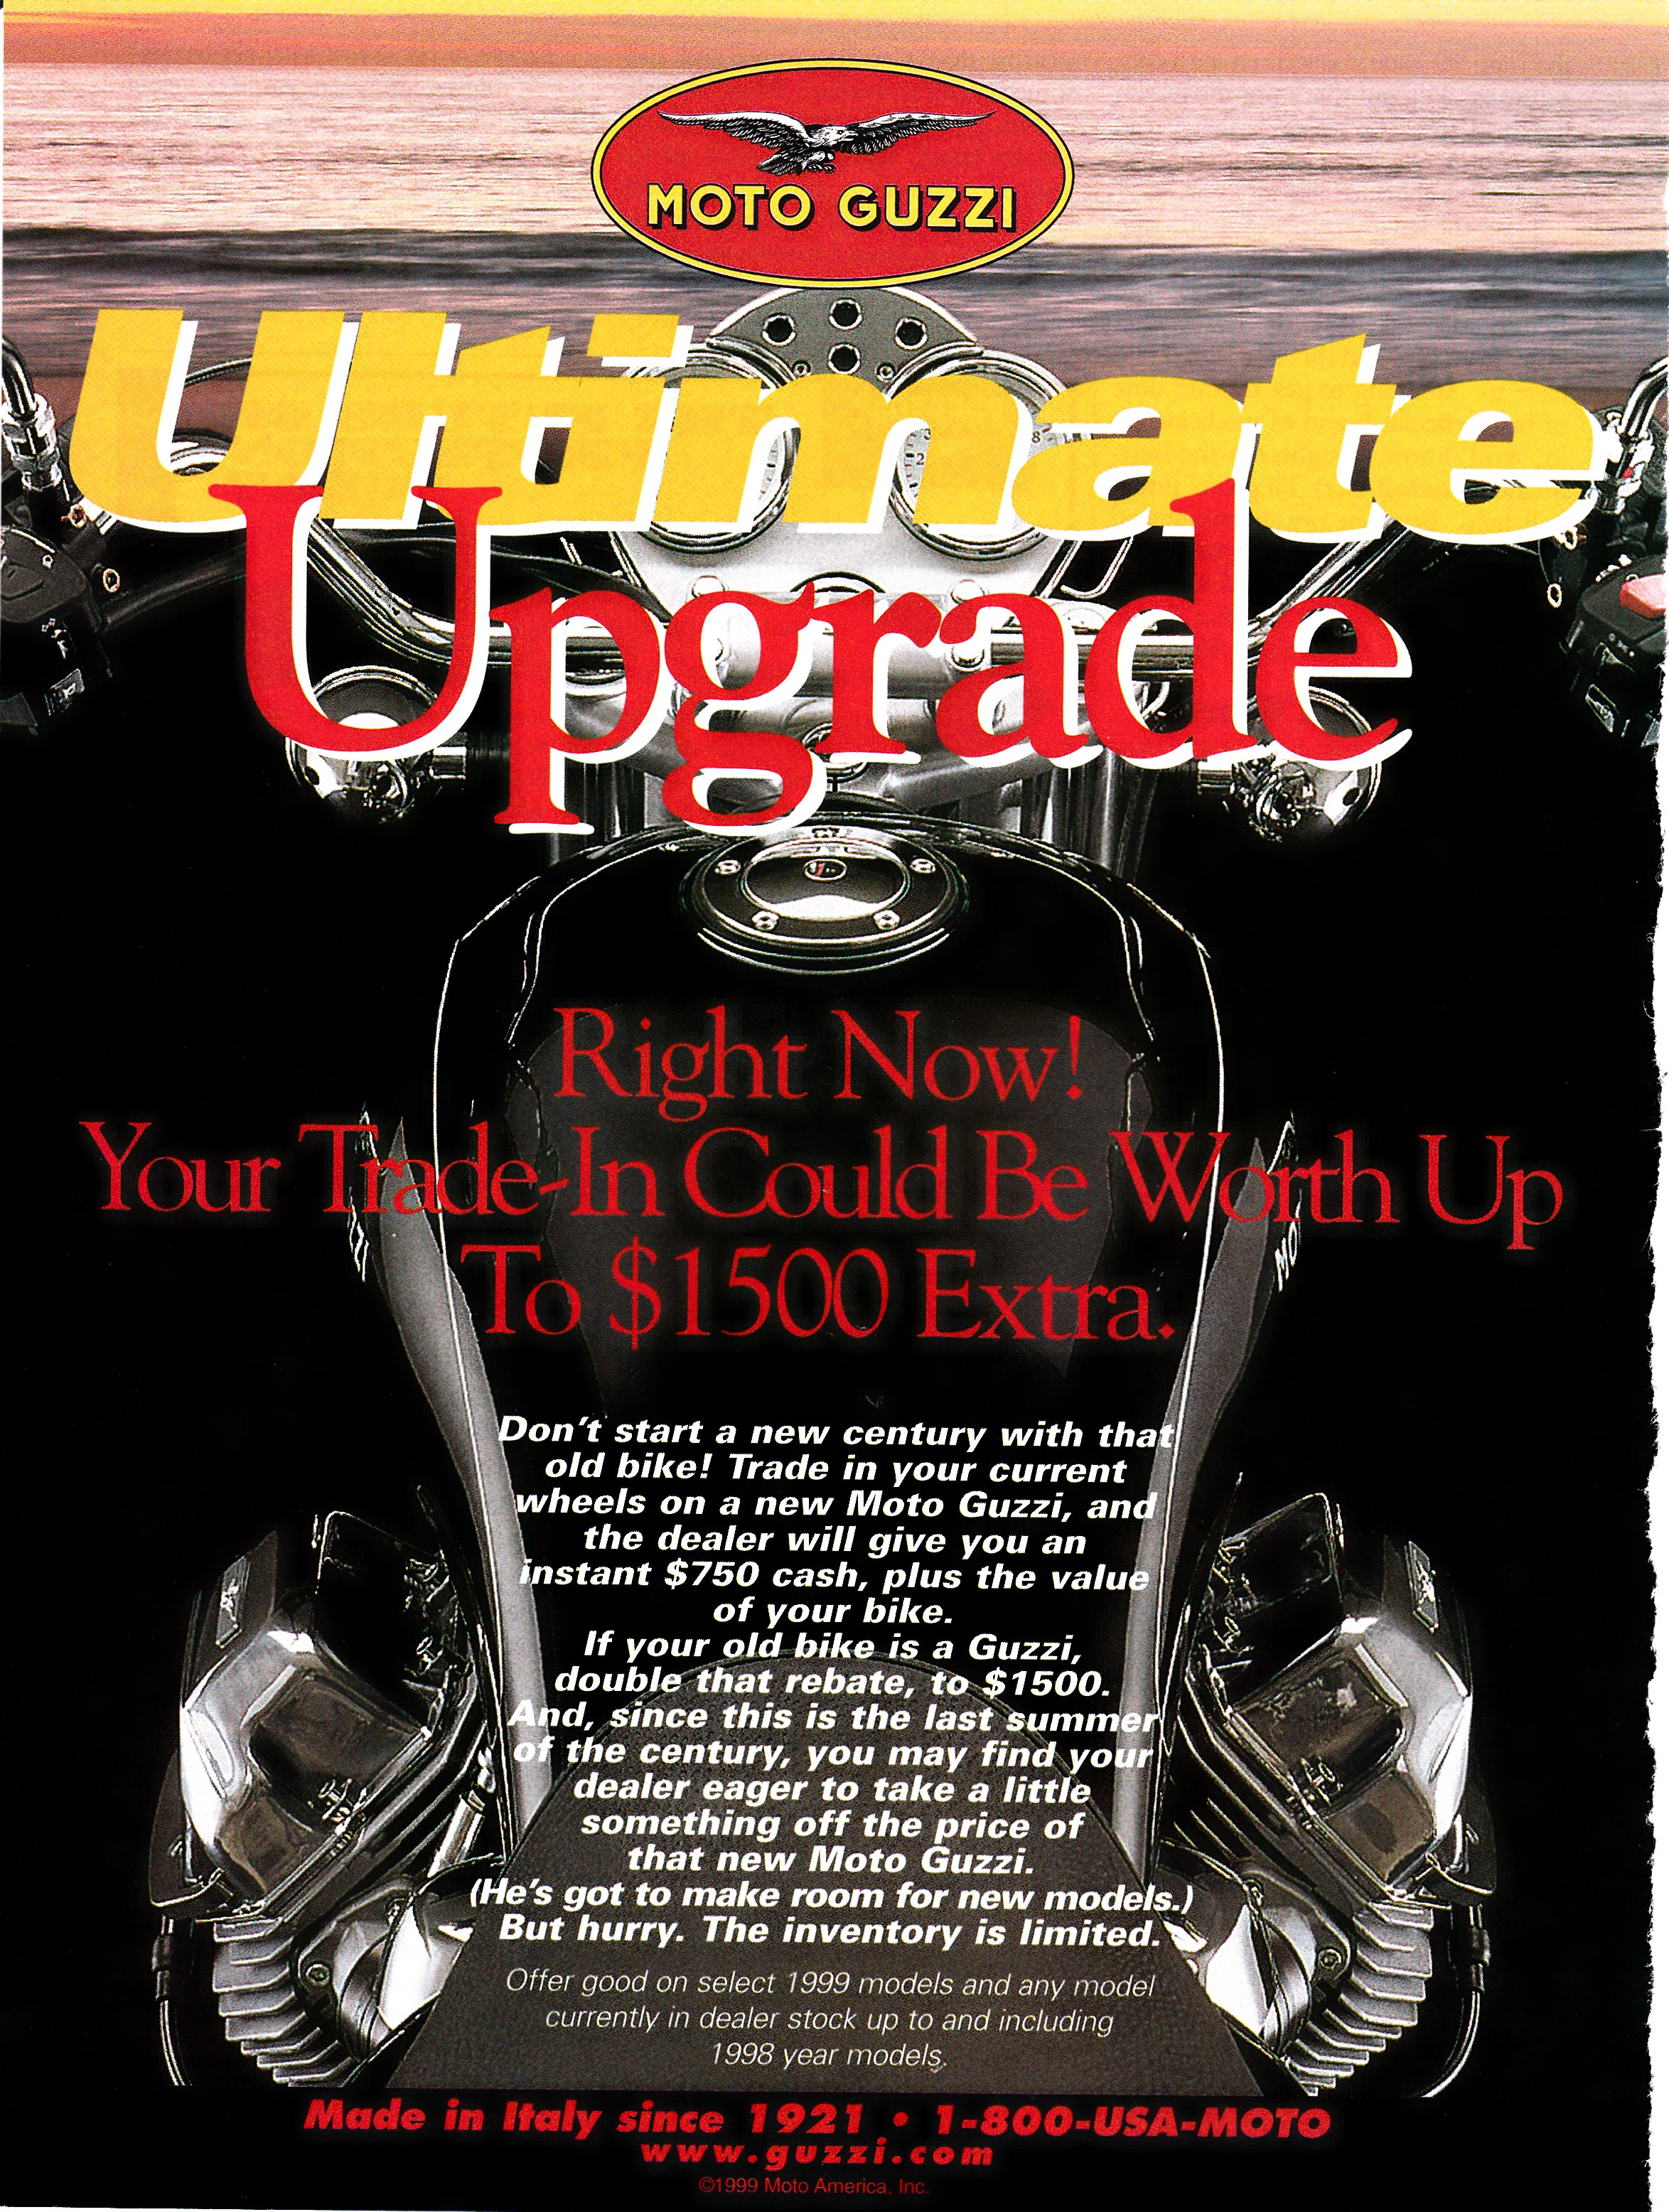 Moto Guzzi advertisement: Ultimate upgrade